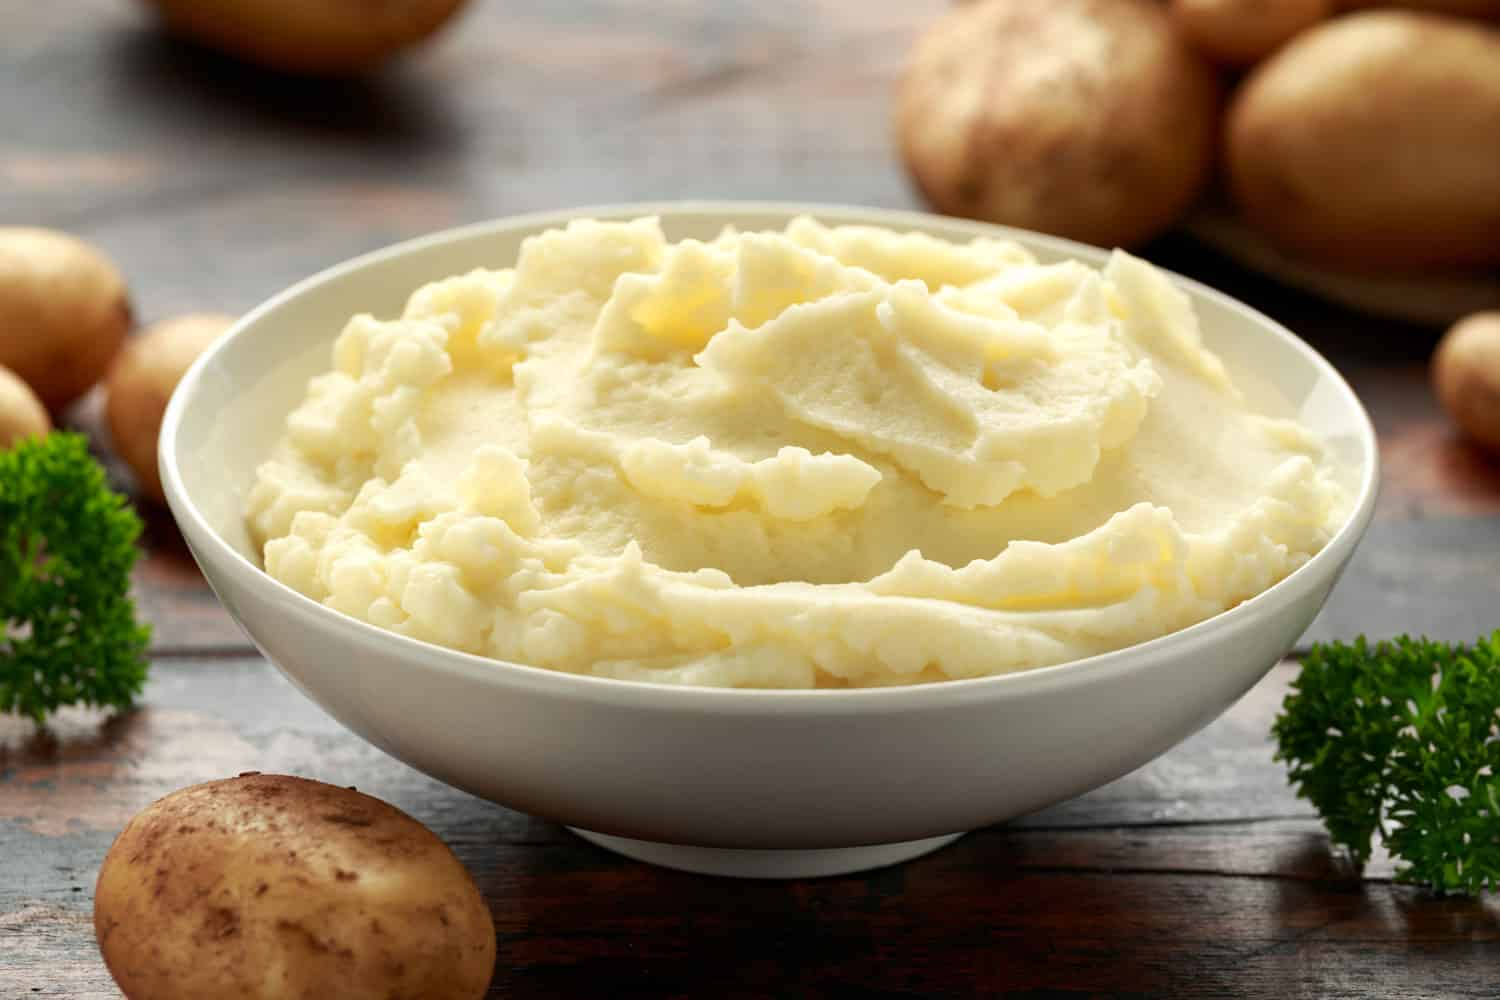 A delicious dish of mashed potatoes with unpeeled potatoes on the background